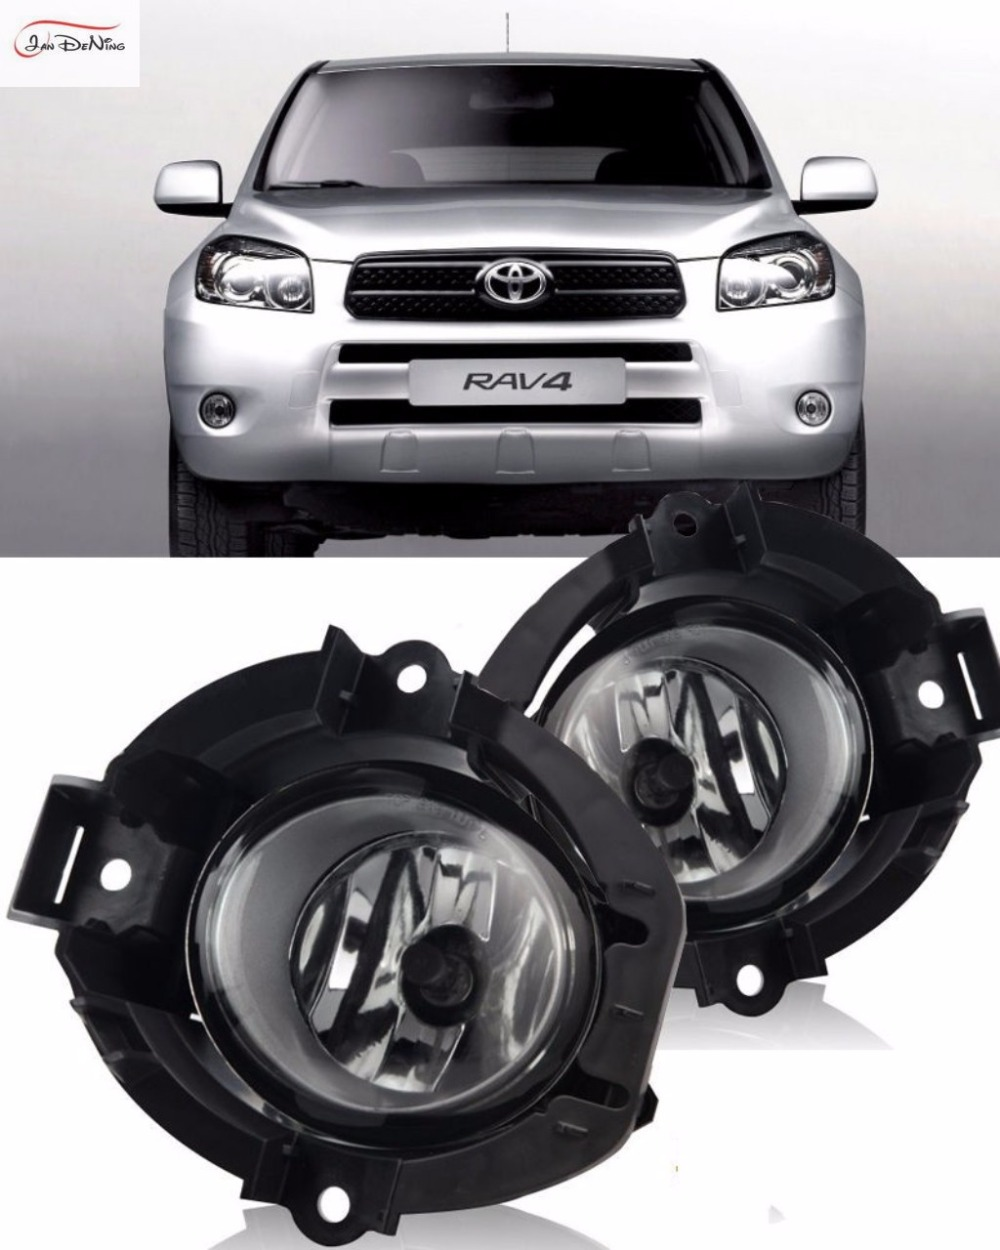 JanDeNing Car Fog Lights  For 2006 2007 2008 Toyota RAV4 Clear Front Fog Lamp Cover Trim Replace assembly kit black (one Pair) 1set front chrome housing clear lens driving bumper fog light lamp grille cover switch line kit for 2007 2009 toyota camry